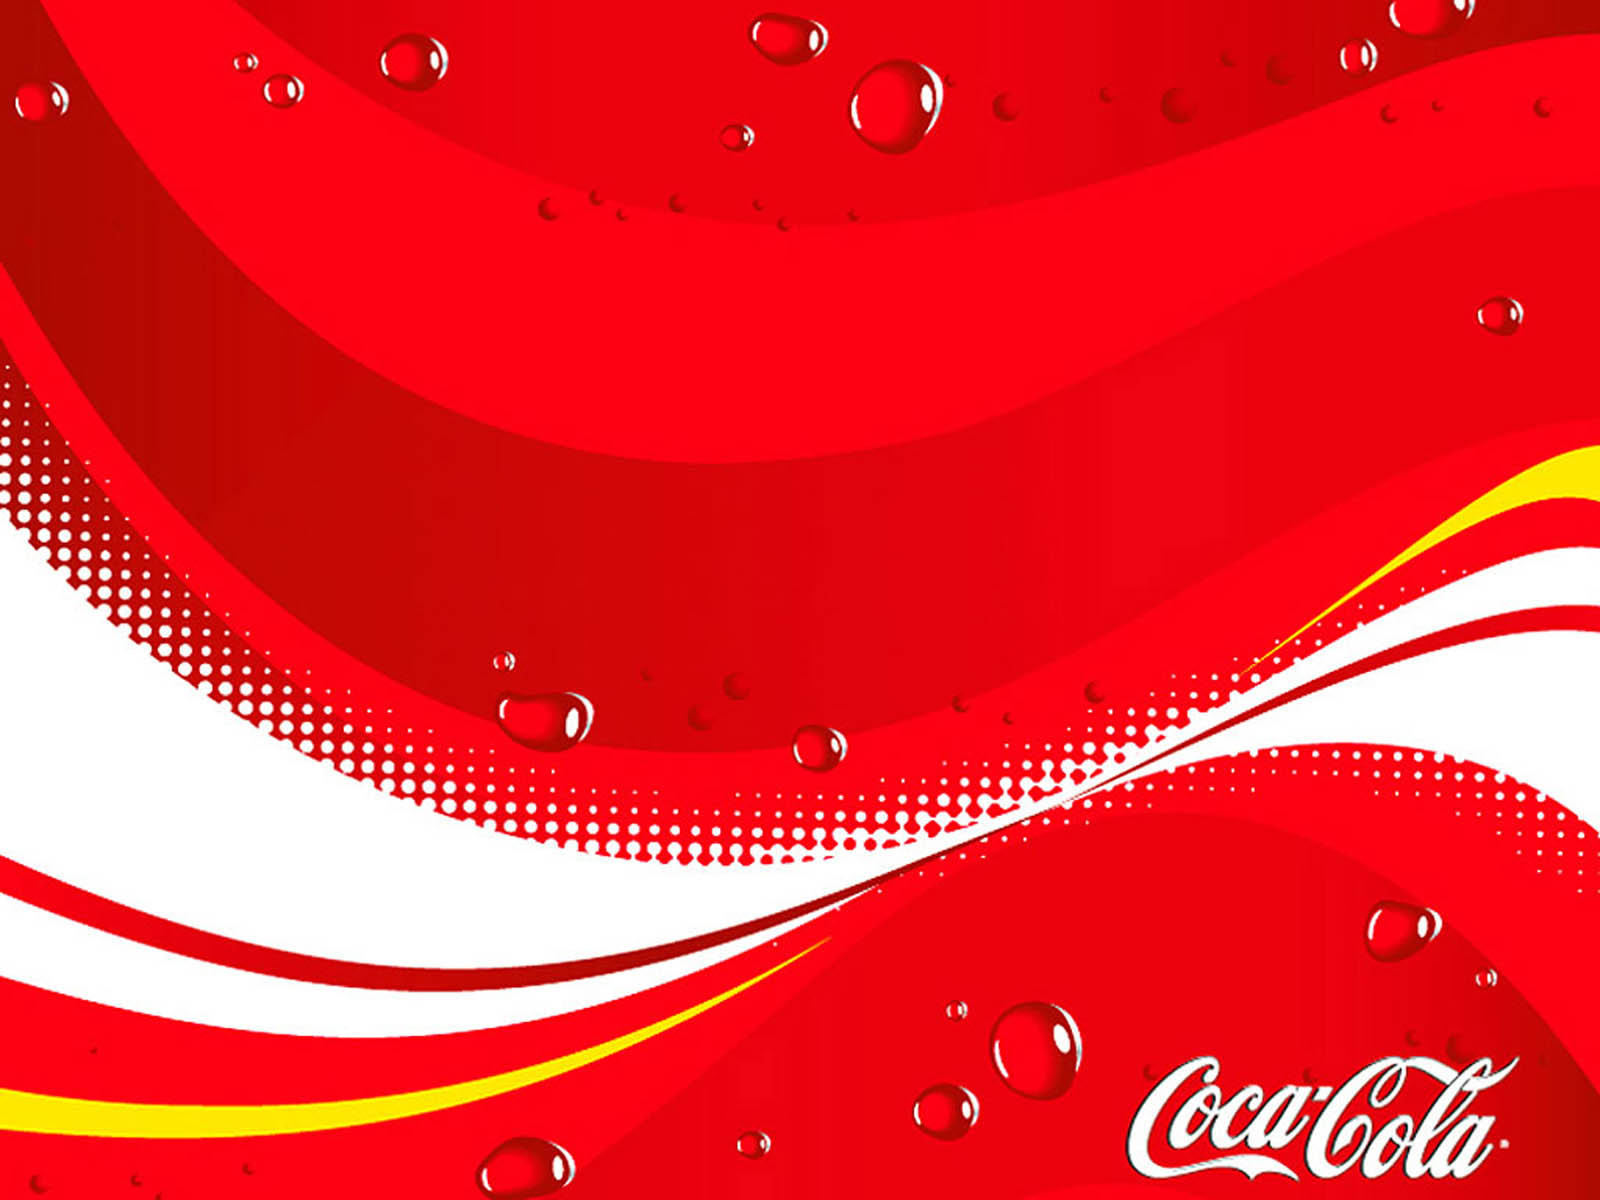 Coca Cola Wallpapers HD Desktop 1600x1200